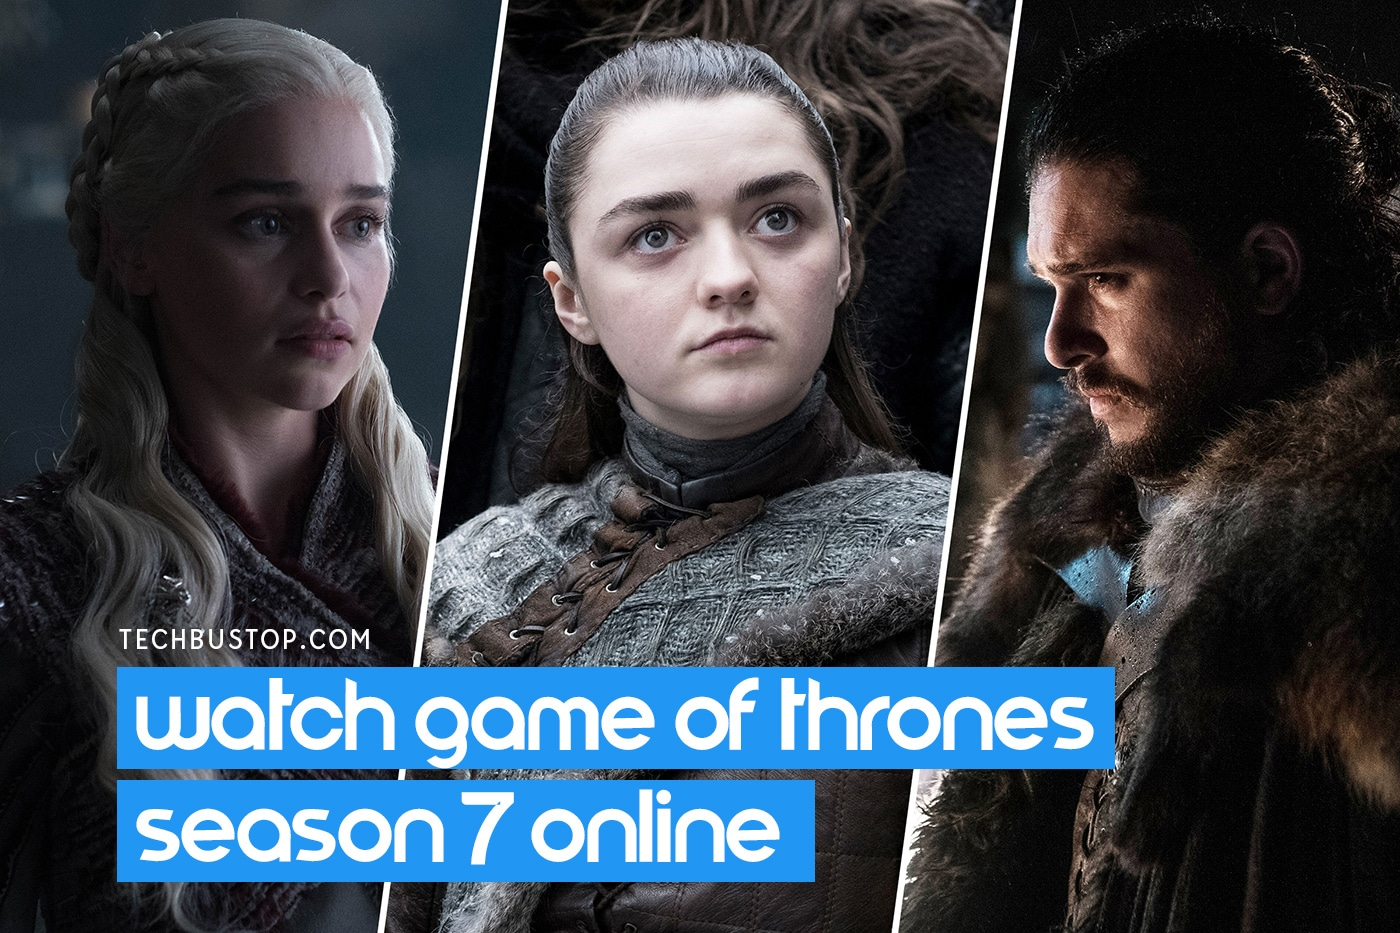 watch game of thrones season 7 episode 7 streaming free